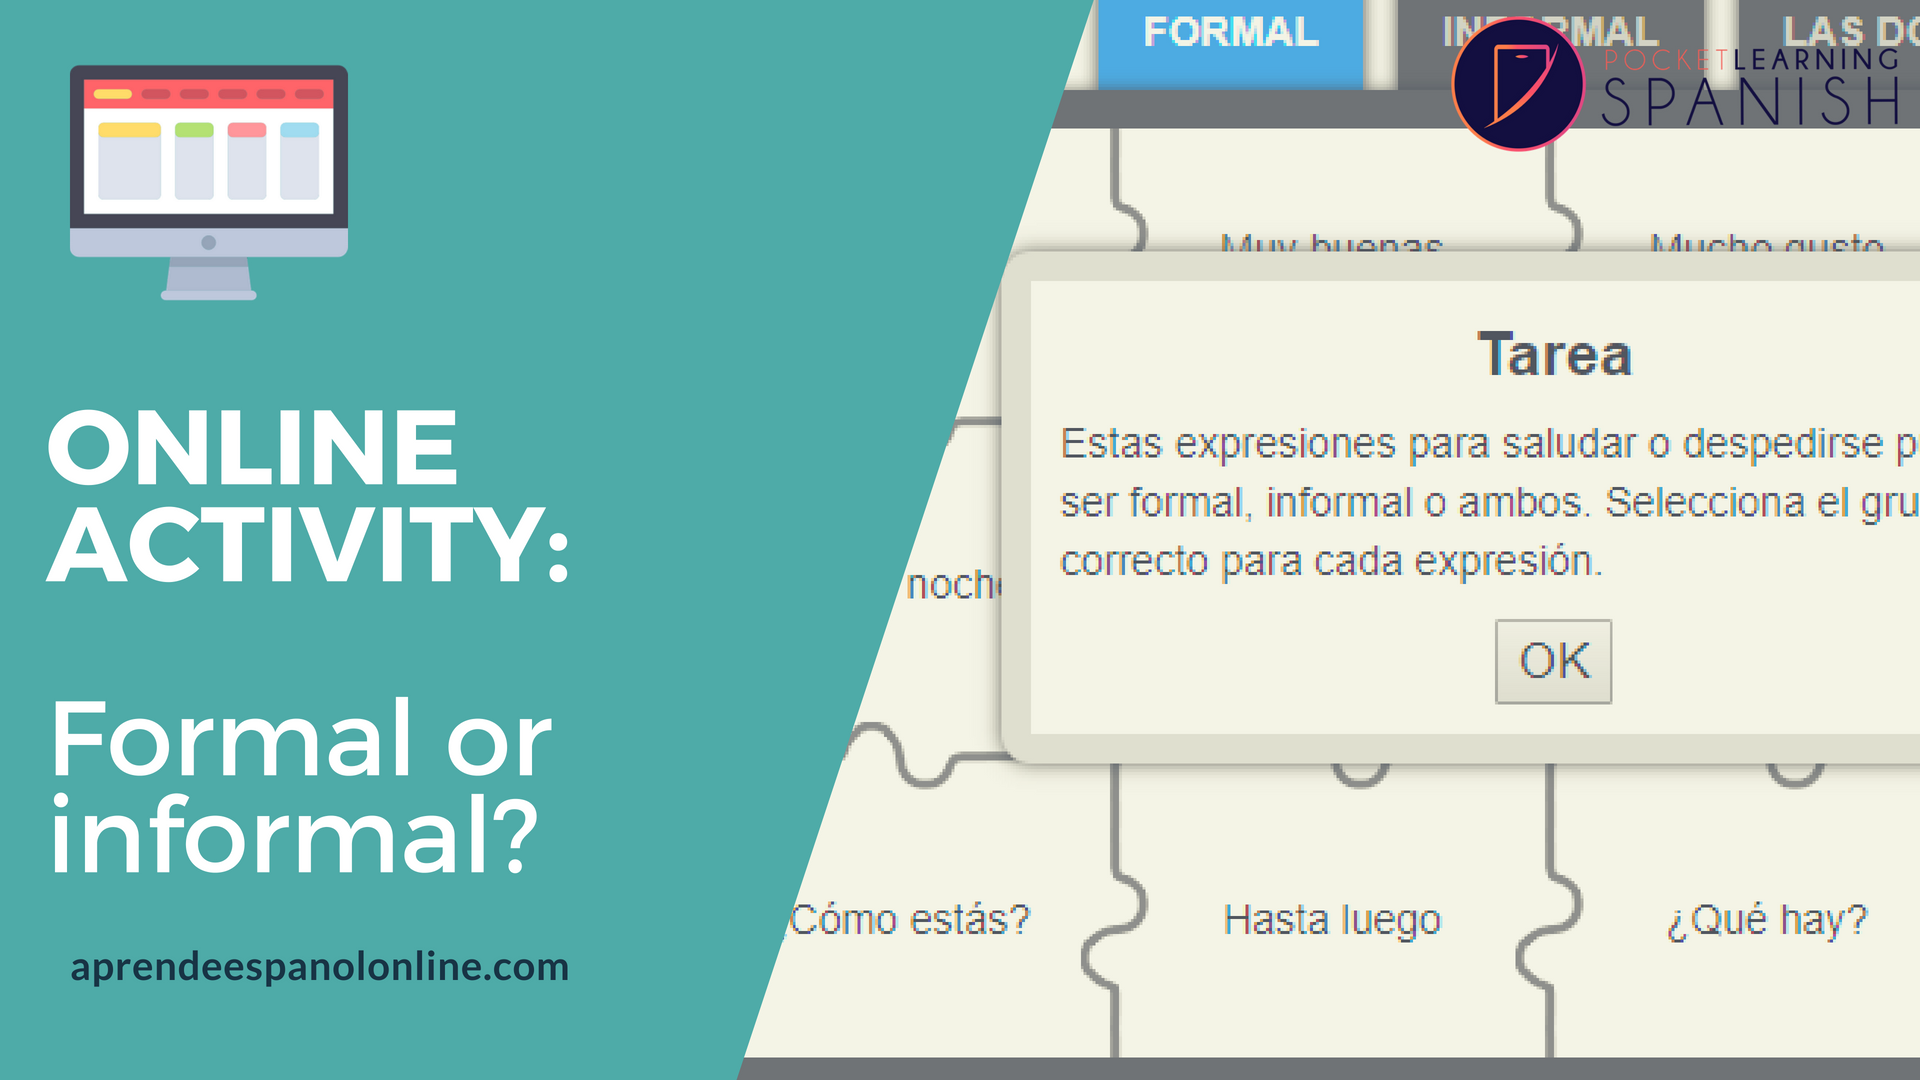 fomal way to say hello in Spanish